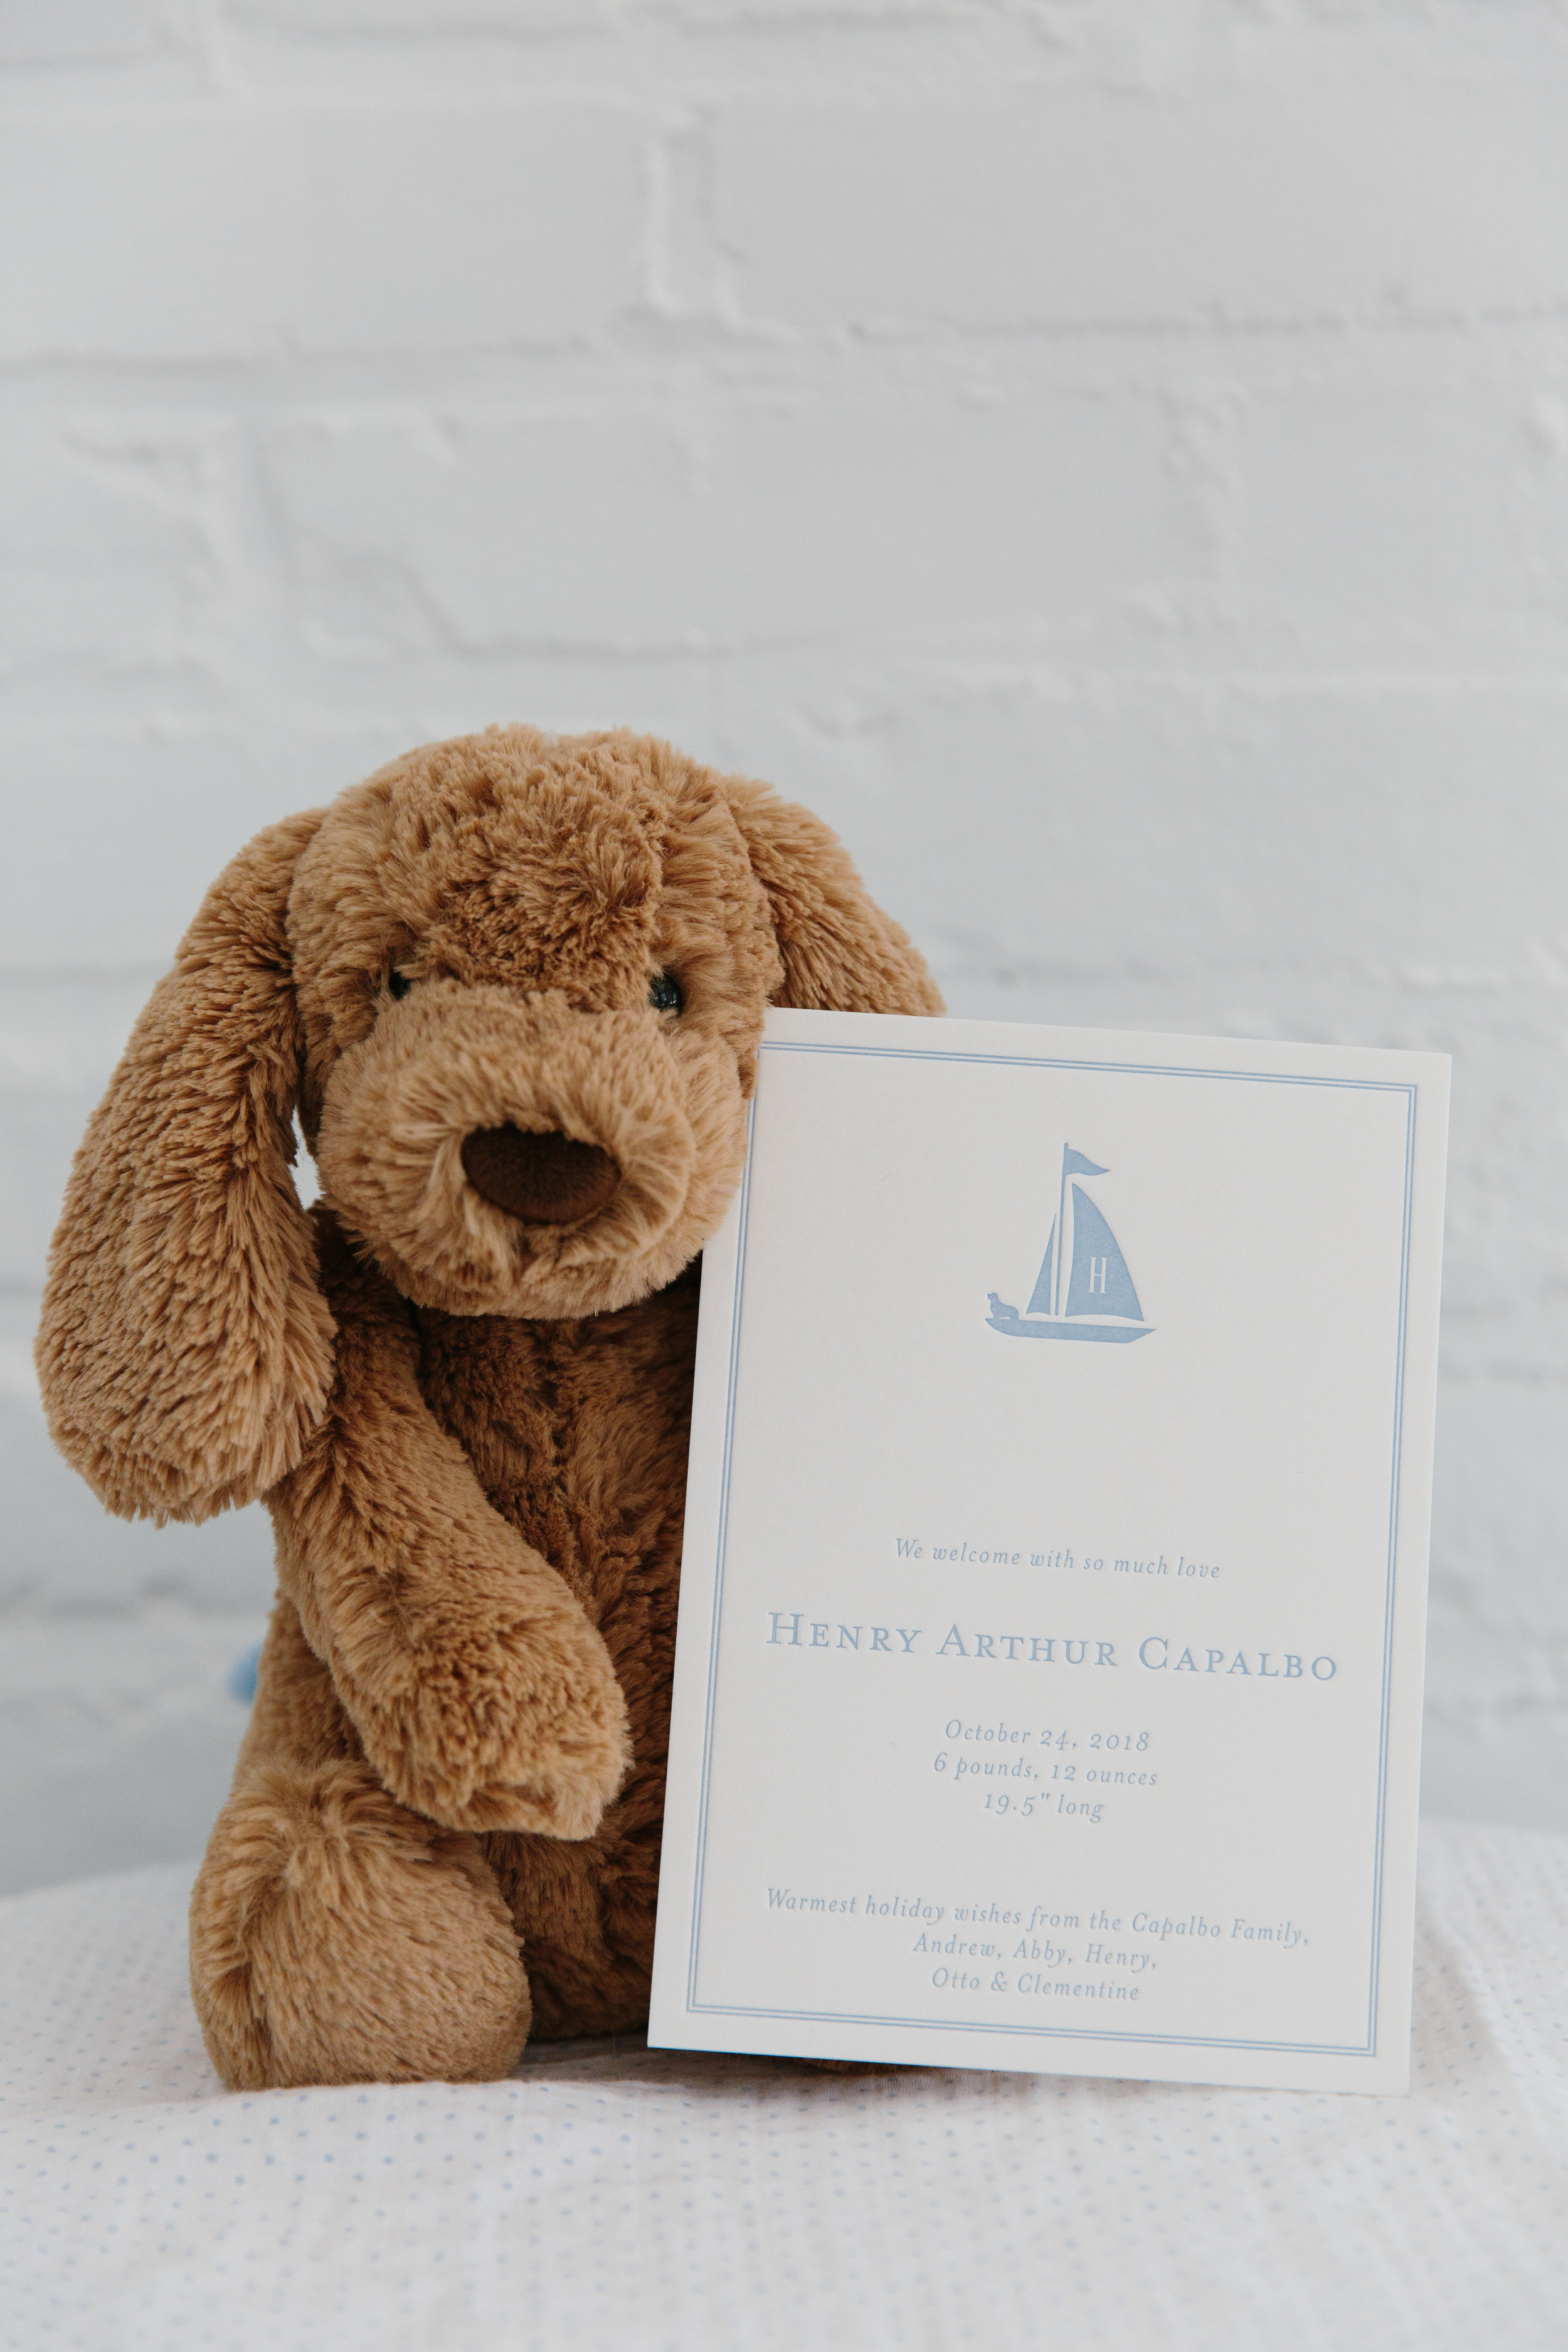 Classic Nautical New England Boy Birth Announcement from Abby Capalbo by Papermoss   Photography: Erin McGinn